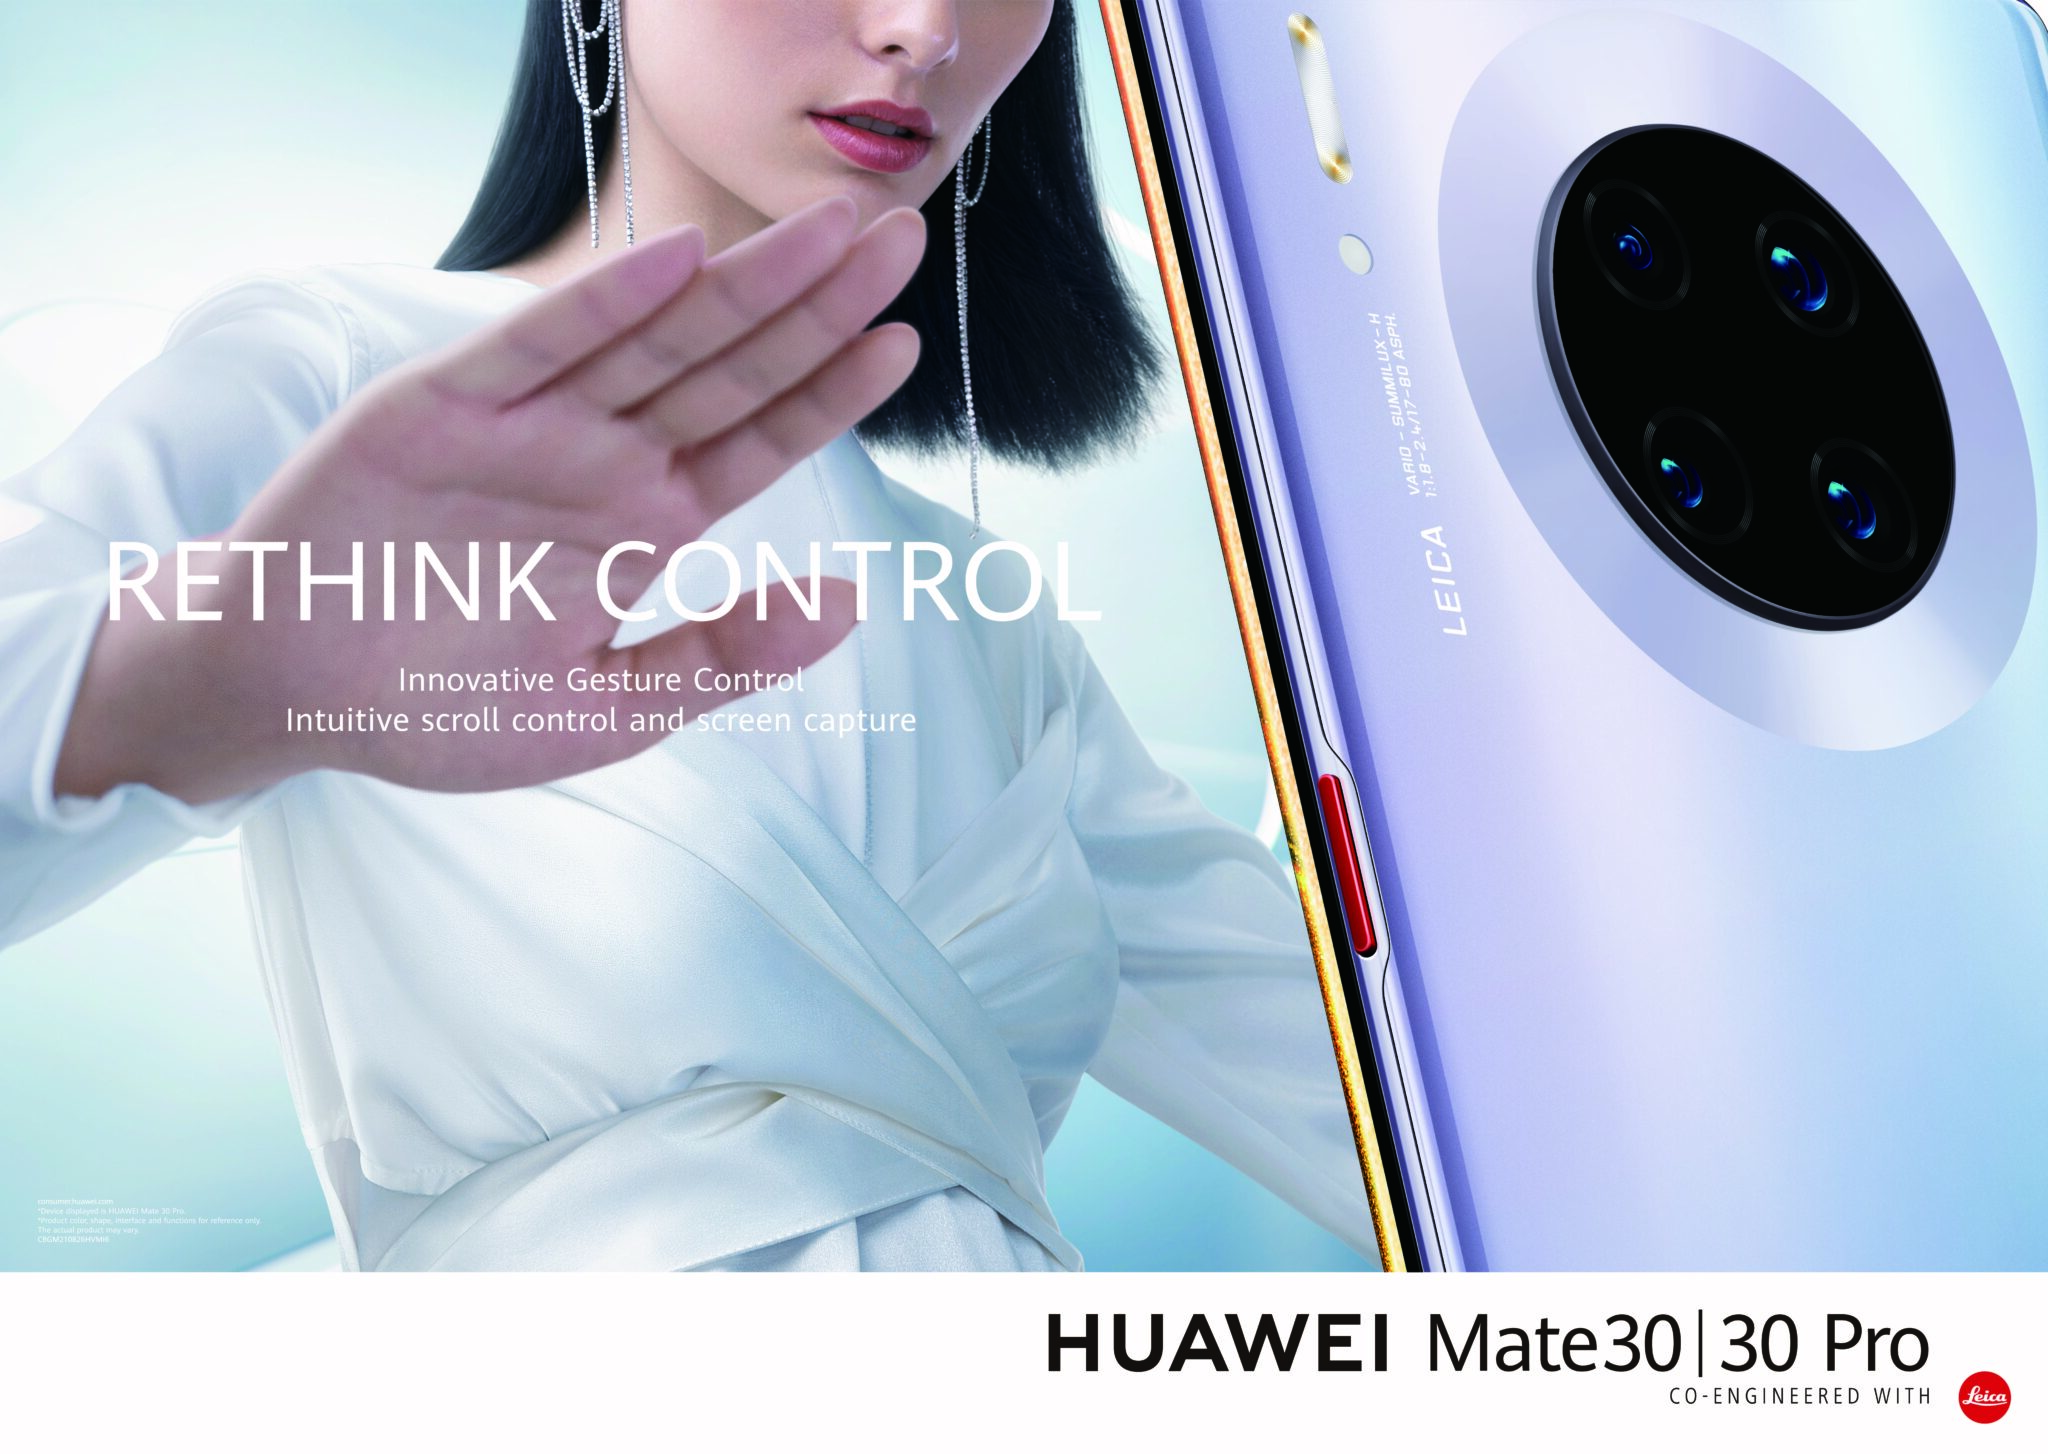 Huawei Smart Life with Air Gestures on Mate30 Pro